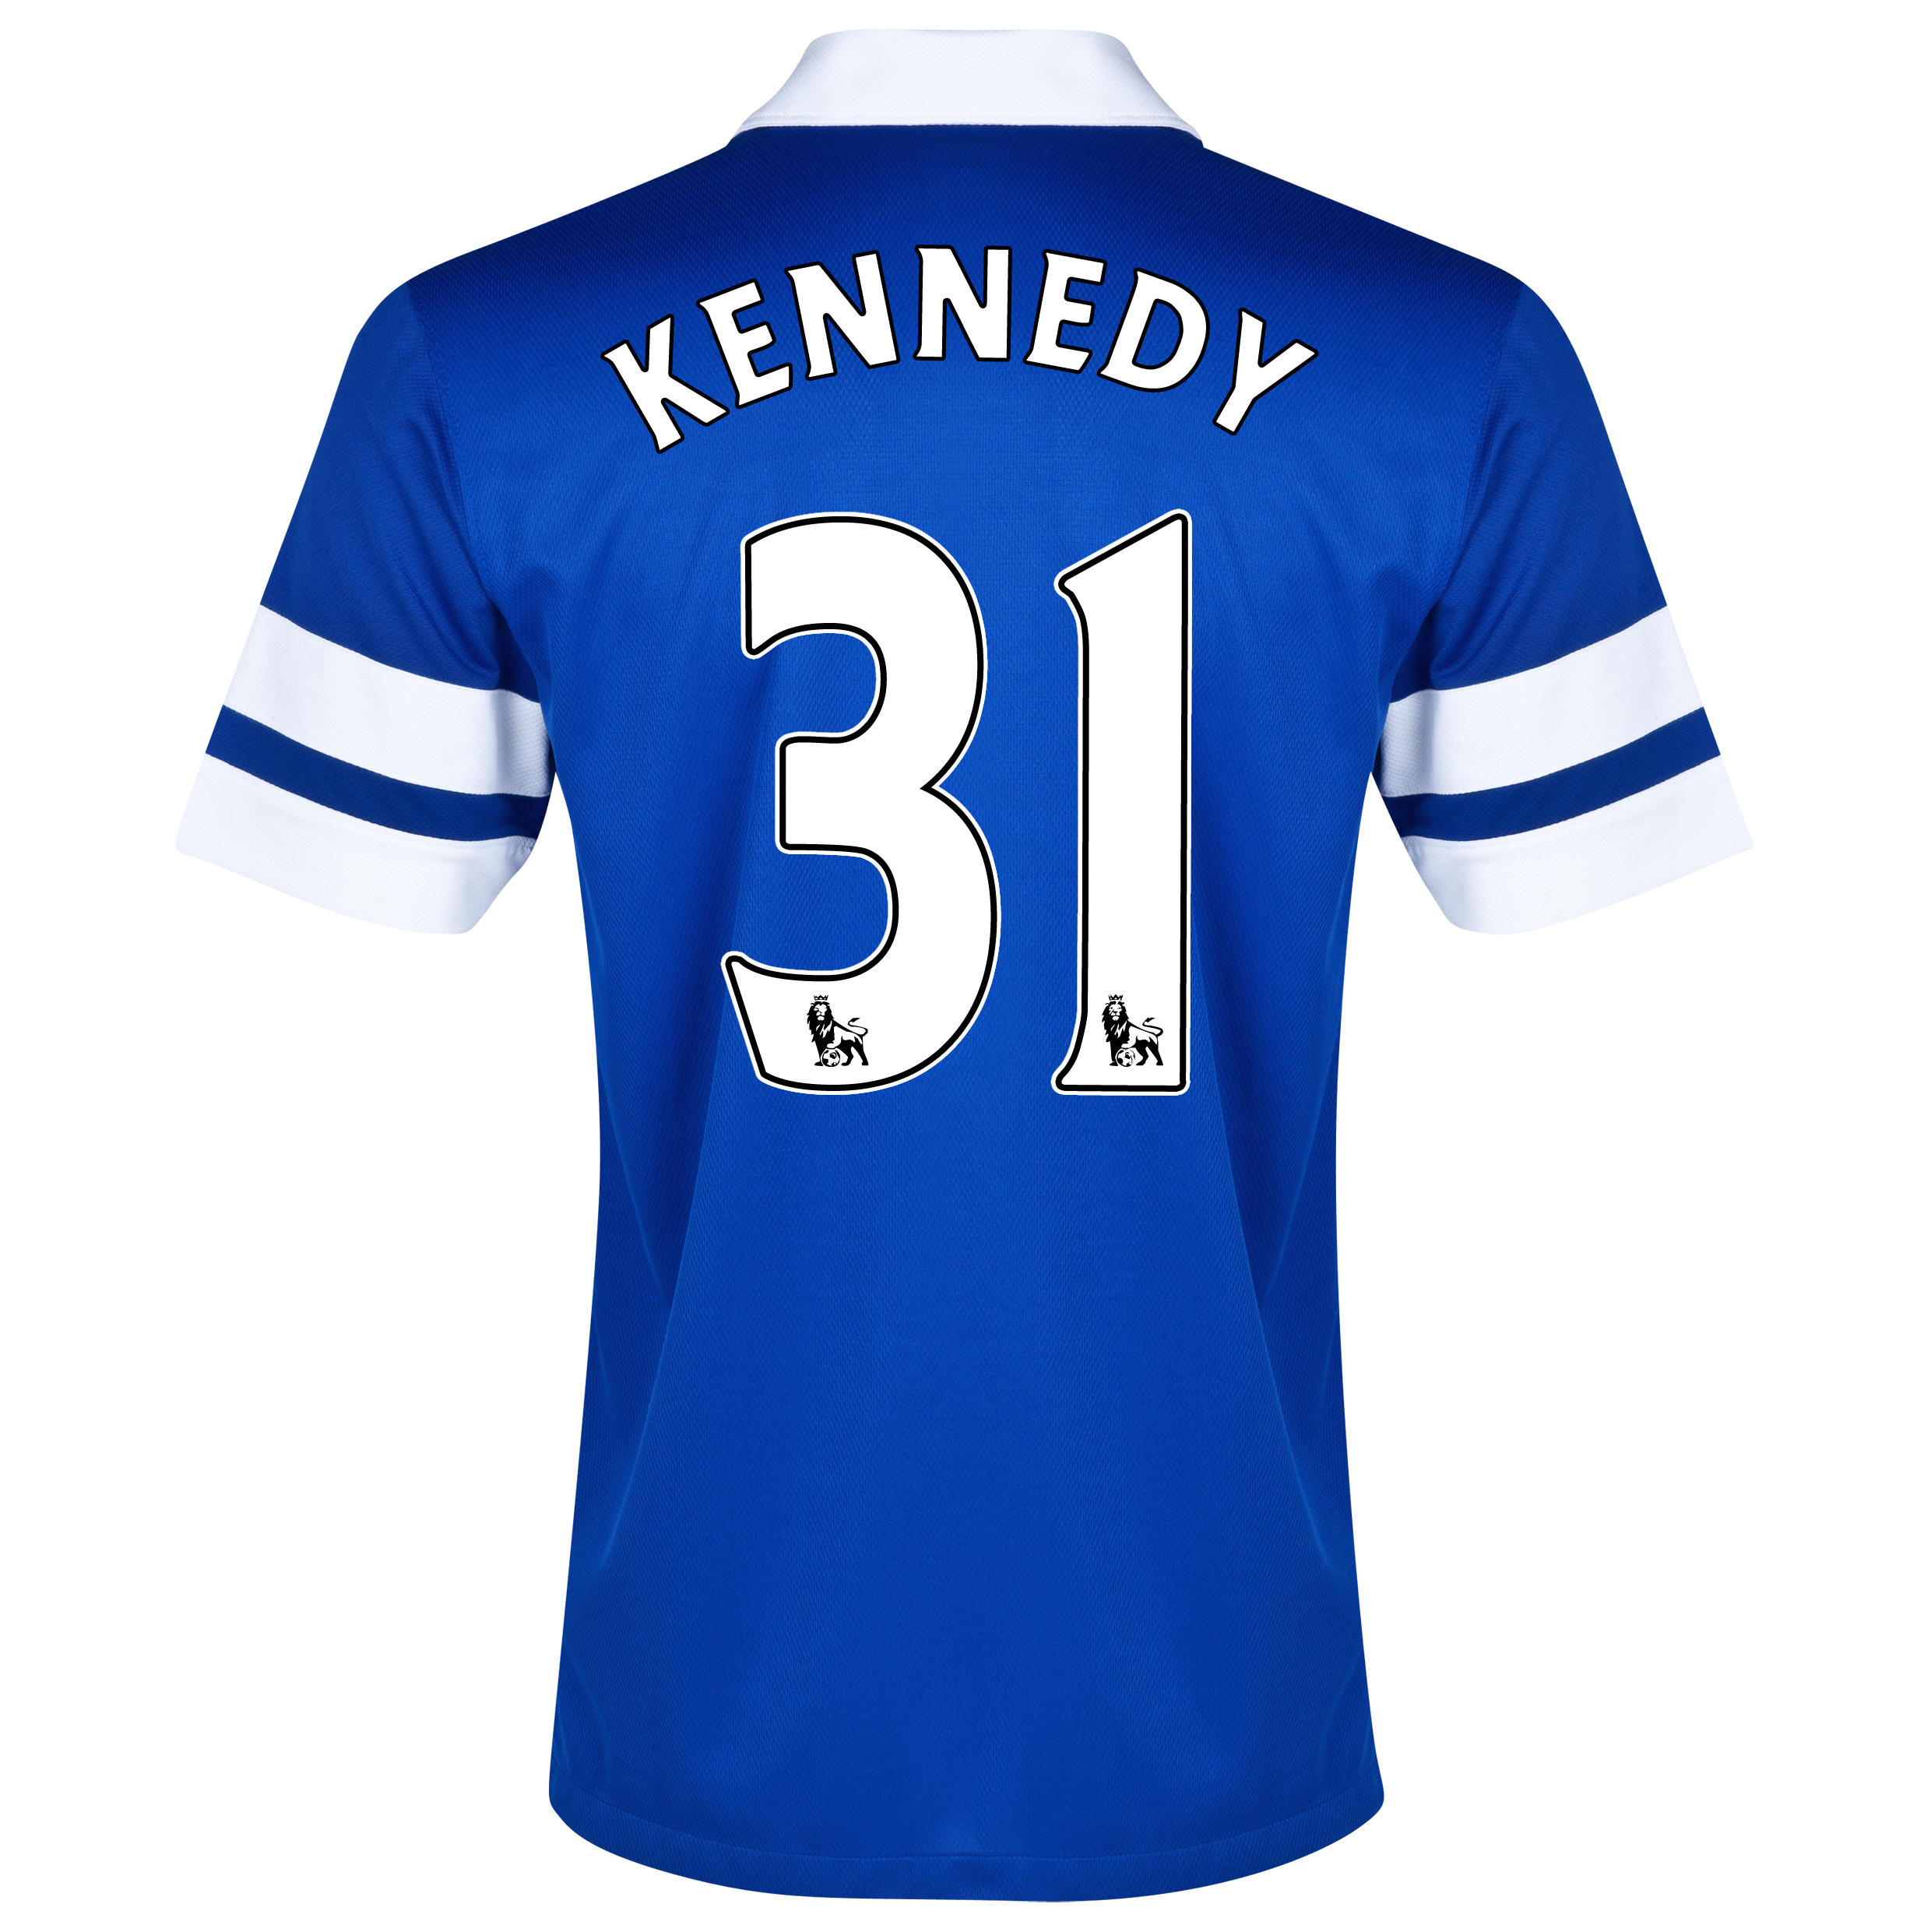 Everton Home Shirt 2013/14 Blue with Kennedy 31 printing